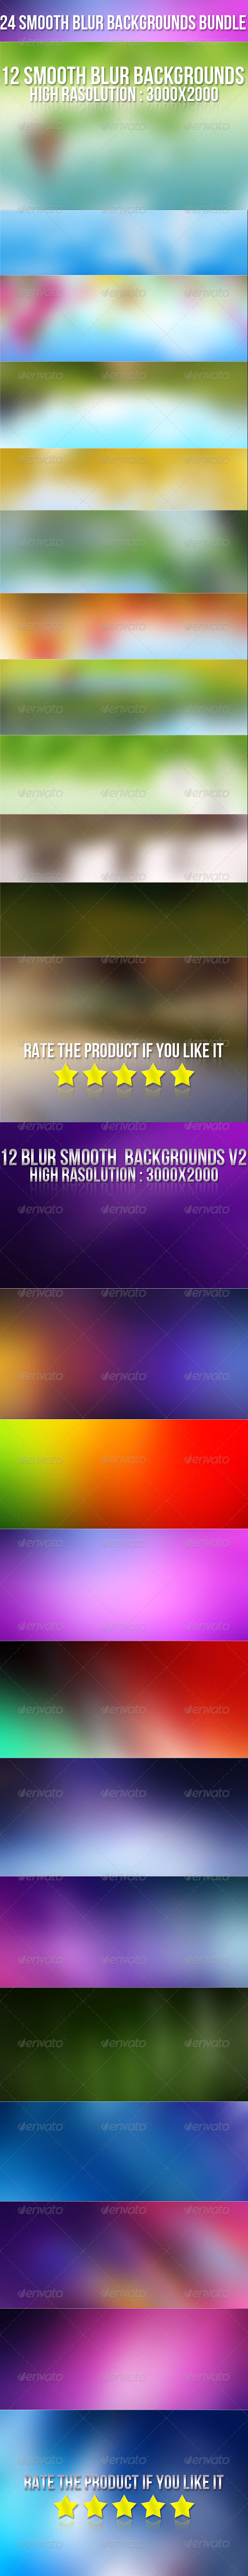 24 Smooth Blur Background Bundle - Abstract Backgrounds